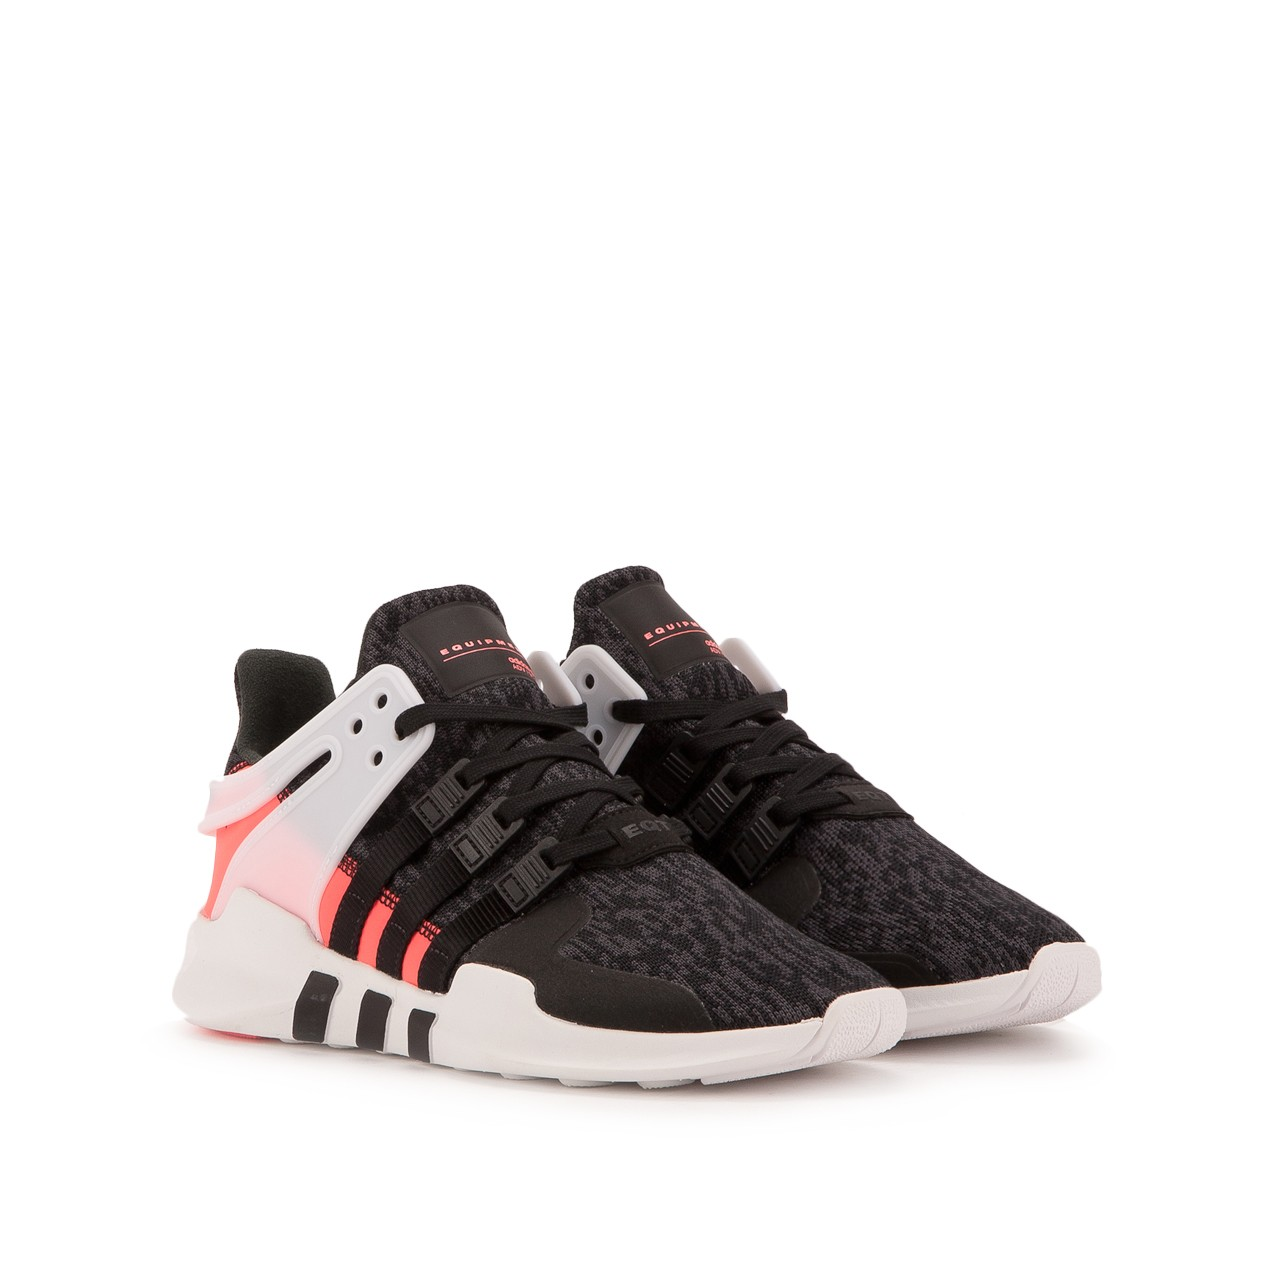 official photos 62cf3 65603 BUTY DAMSKIE ADIDAS EQT SUPPORT ADV BB0543 39 13 7573148831